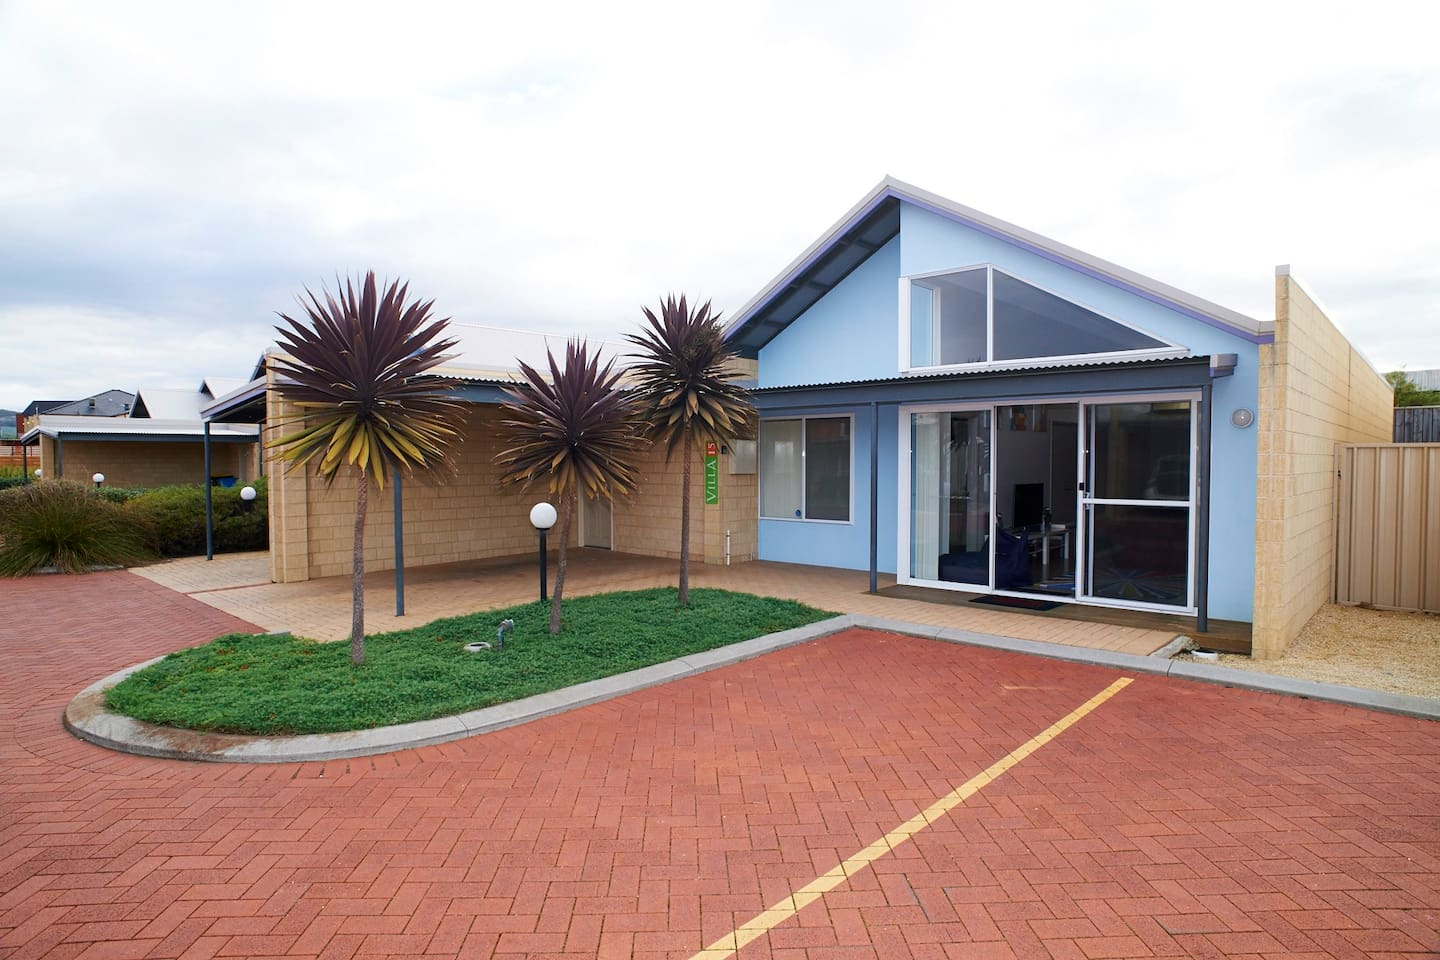 Villa 15 with private carport and public parking bays right out the front. Plenty of room for everyone.